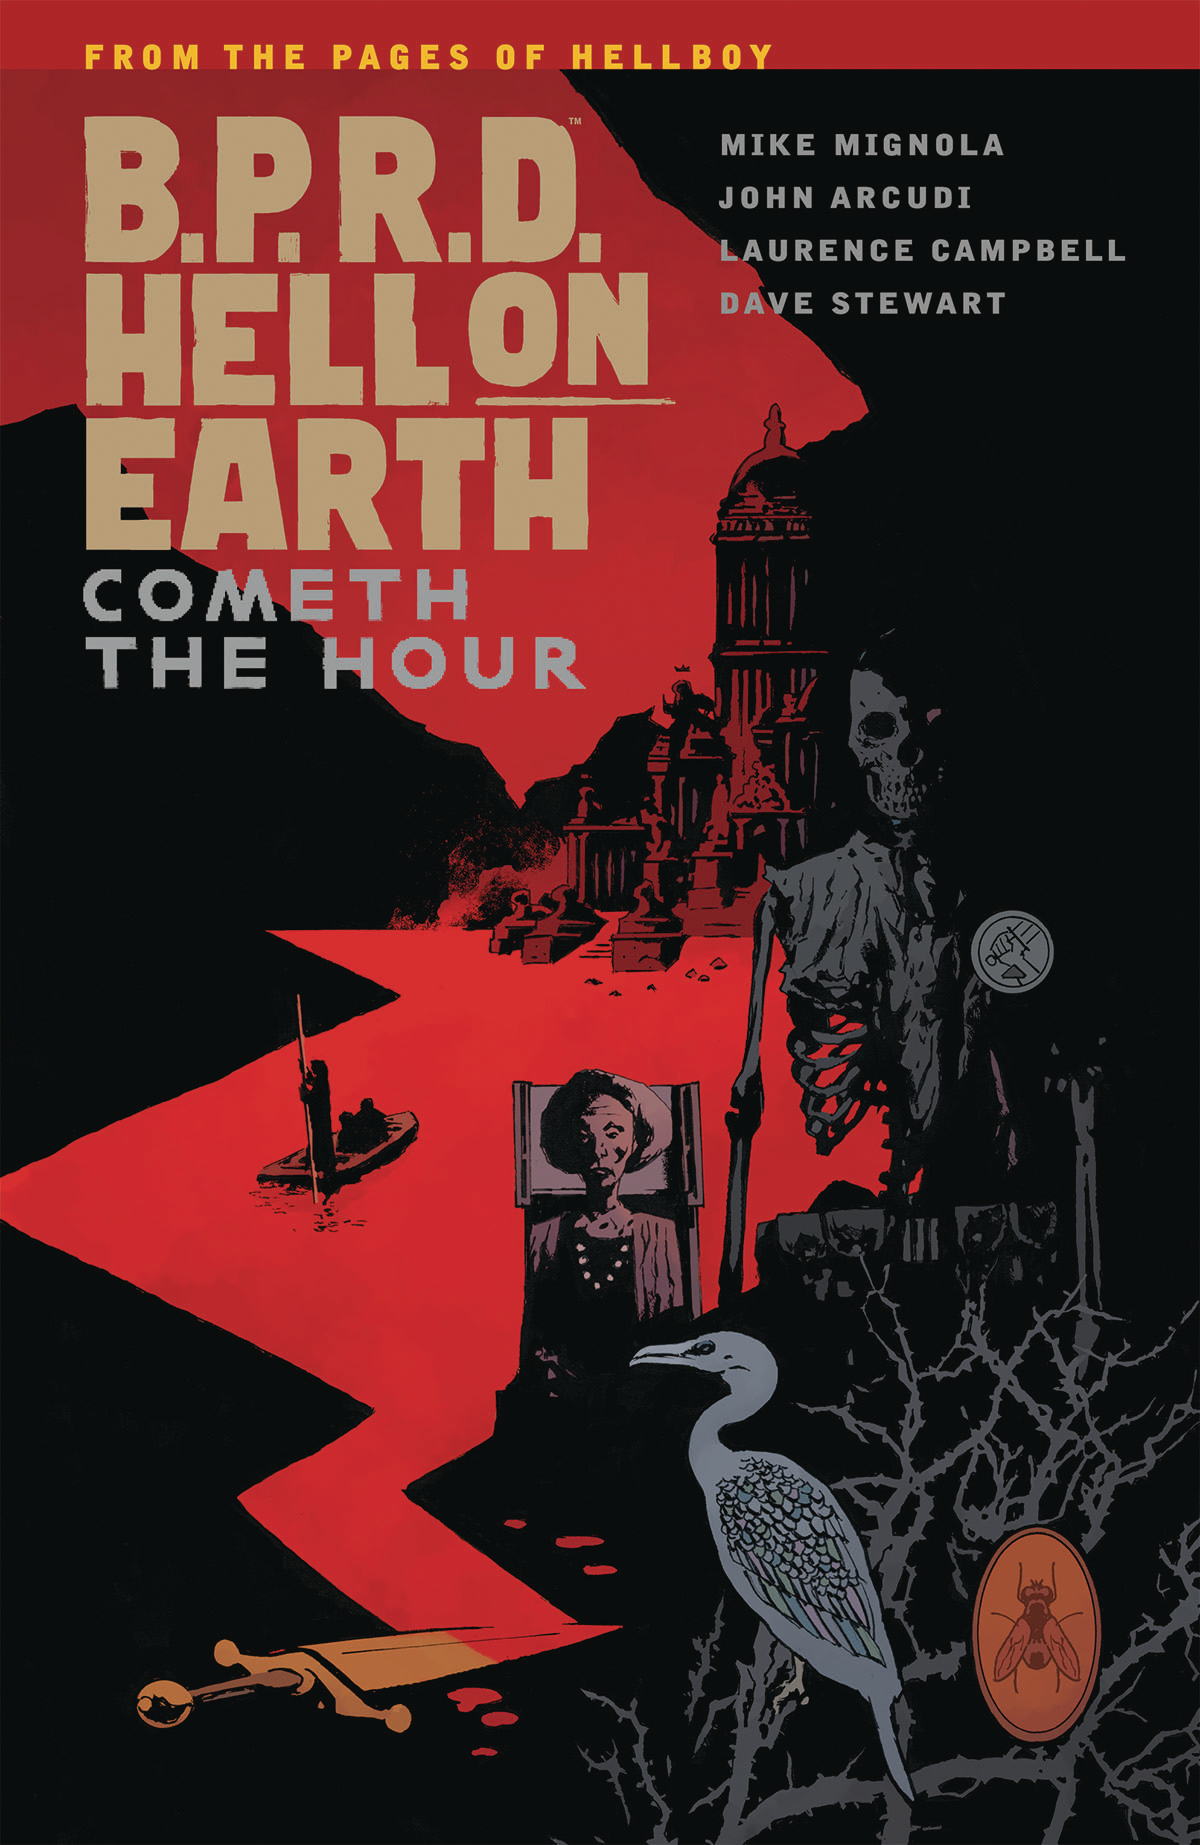 BPRD HELL ON EARTH TP VOL 15 COMETH THE HOUR